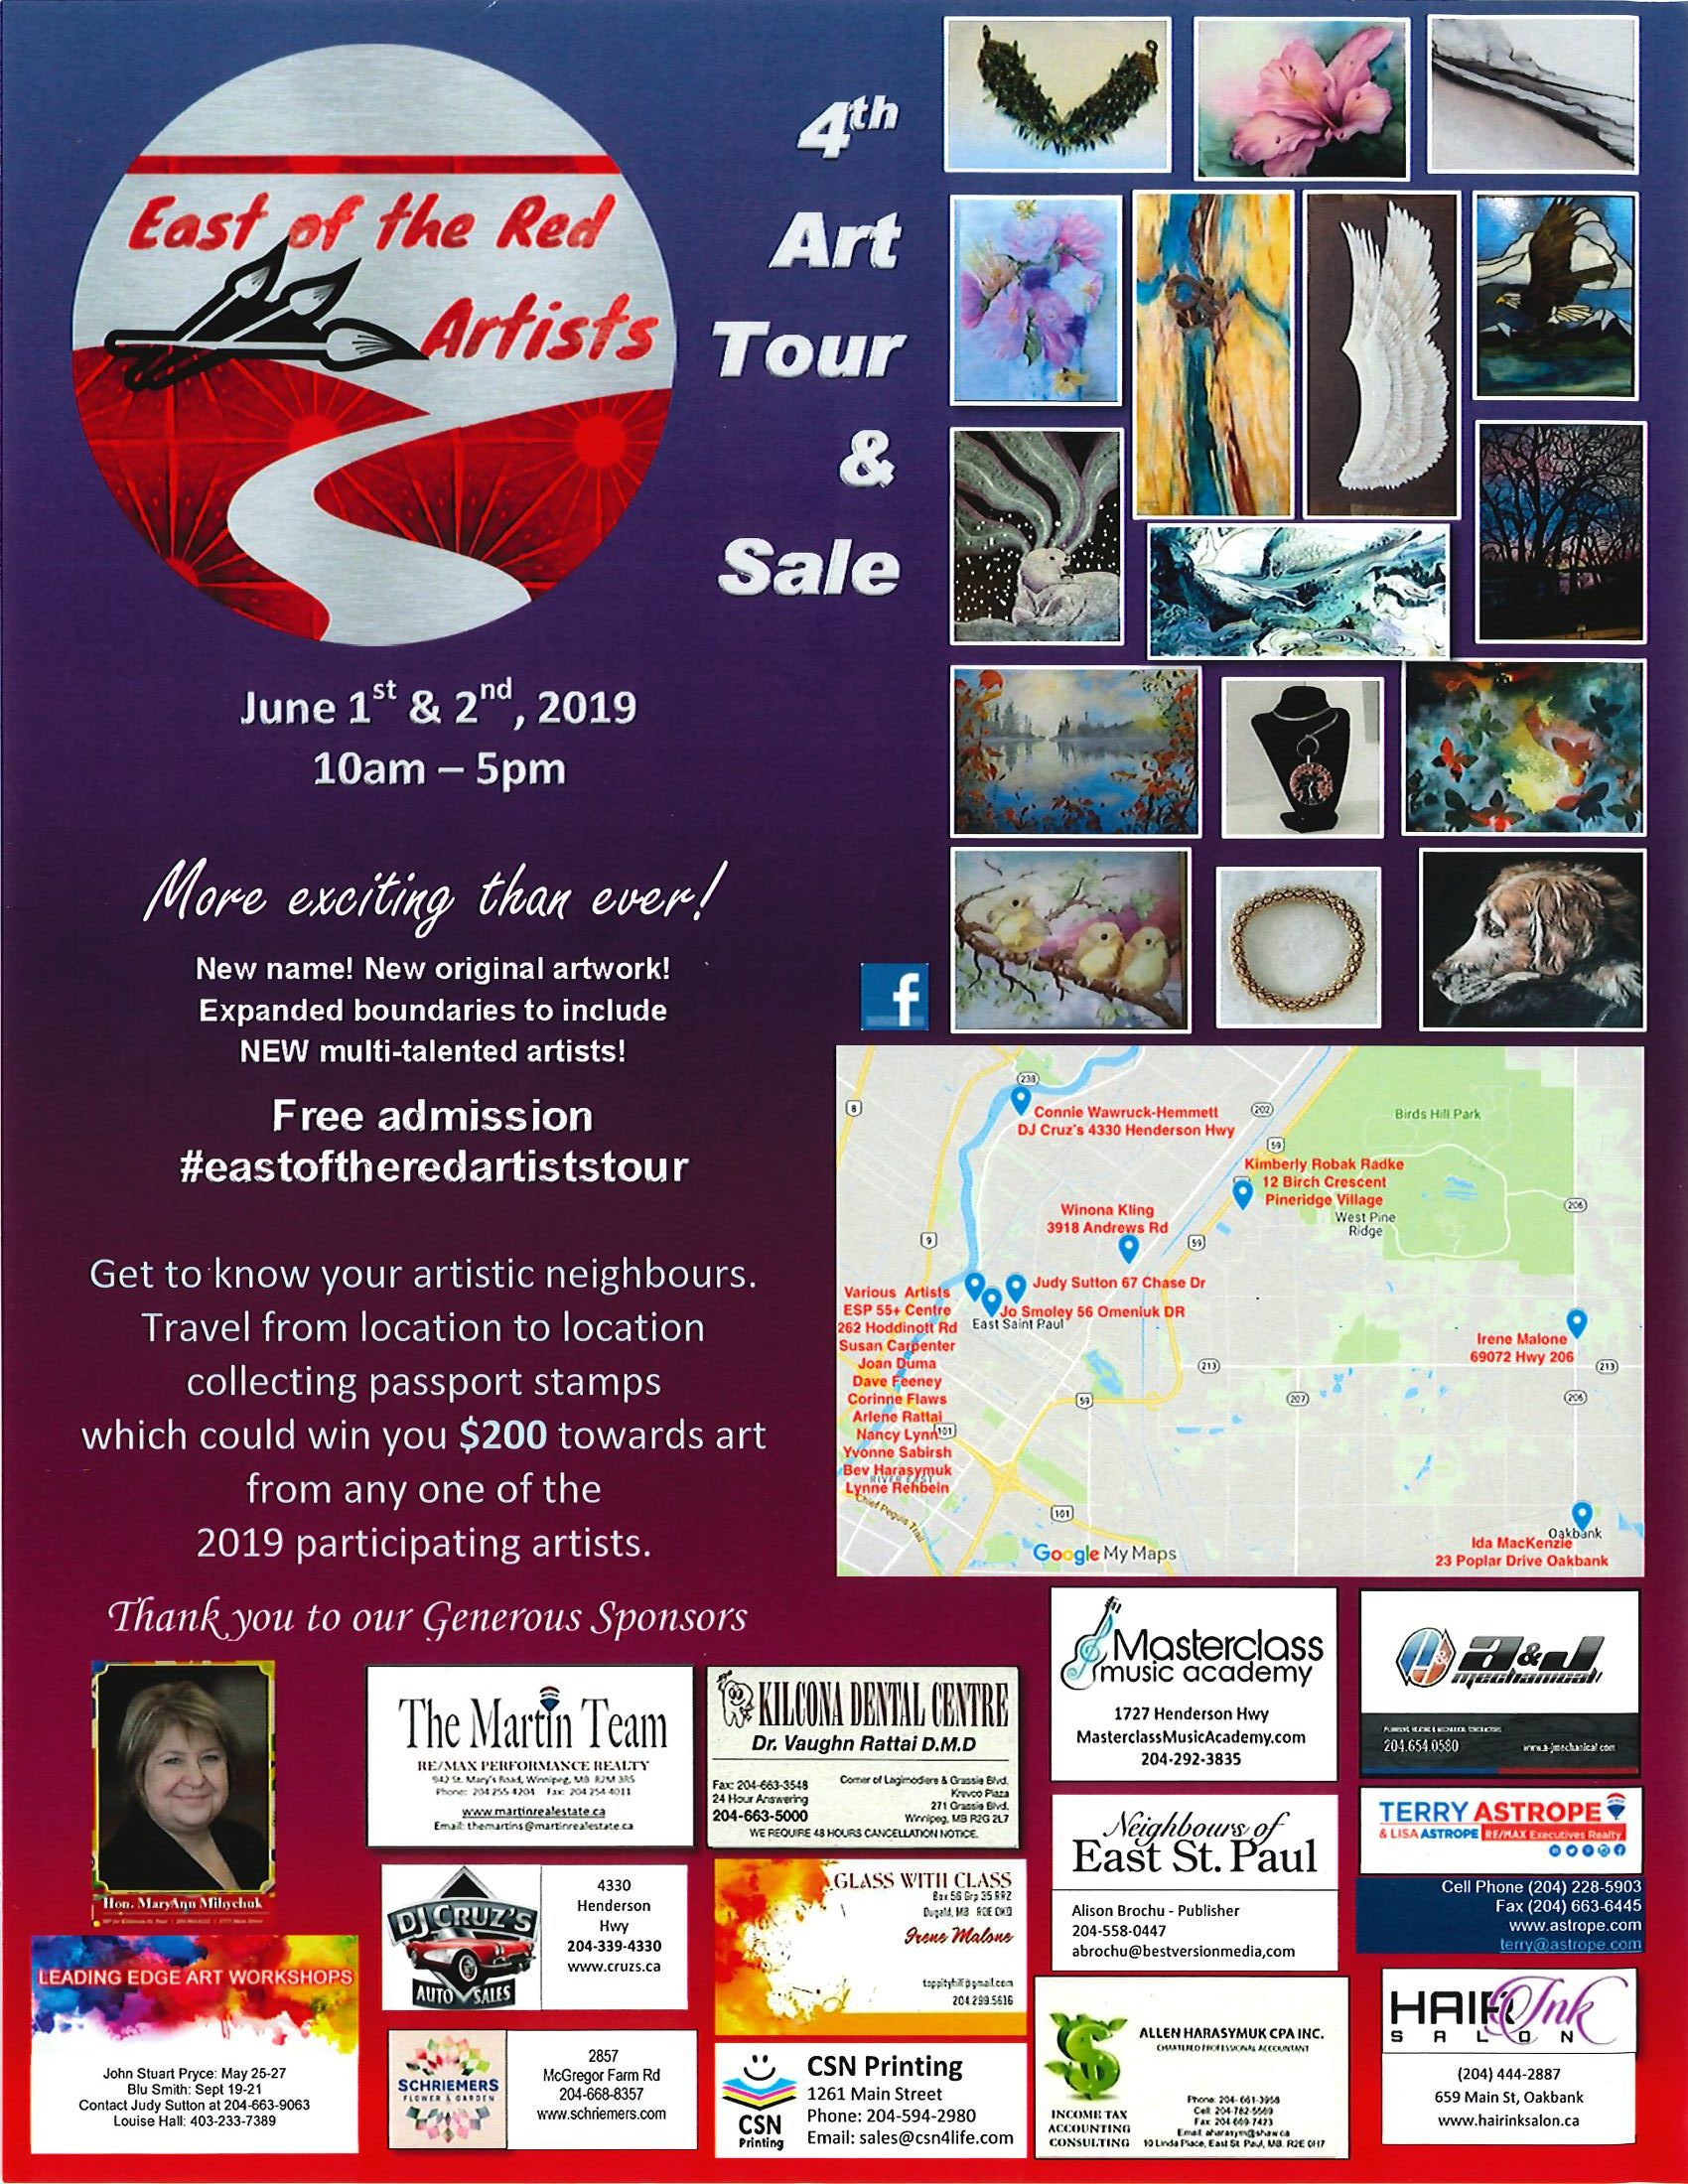 East Side of the Red Artists Art Tour and Sale